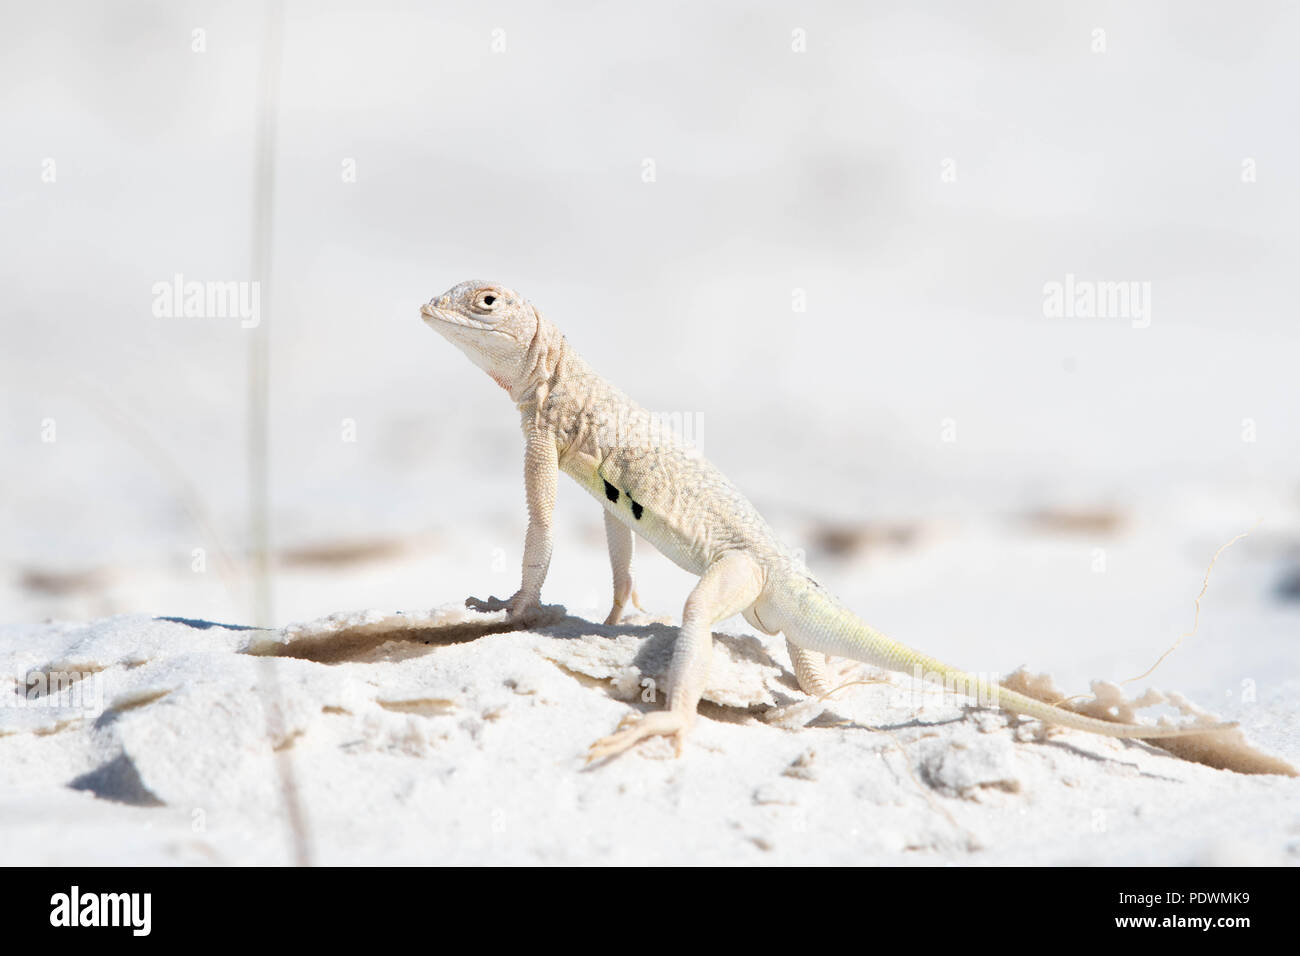 Bleached Earless Lizard, (Holbrookia maculata ruthveni), White Sands National Monument, New Mexico, USA. Stock Photo